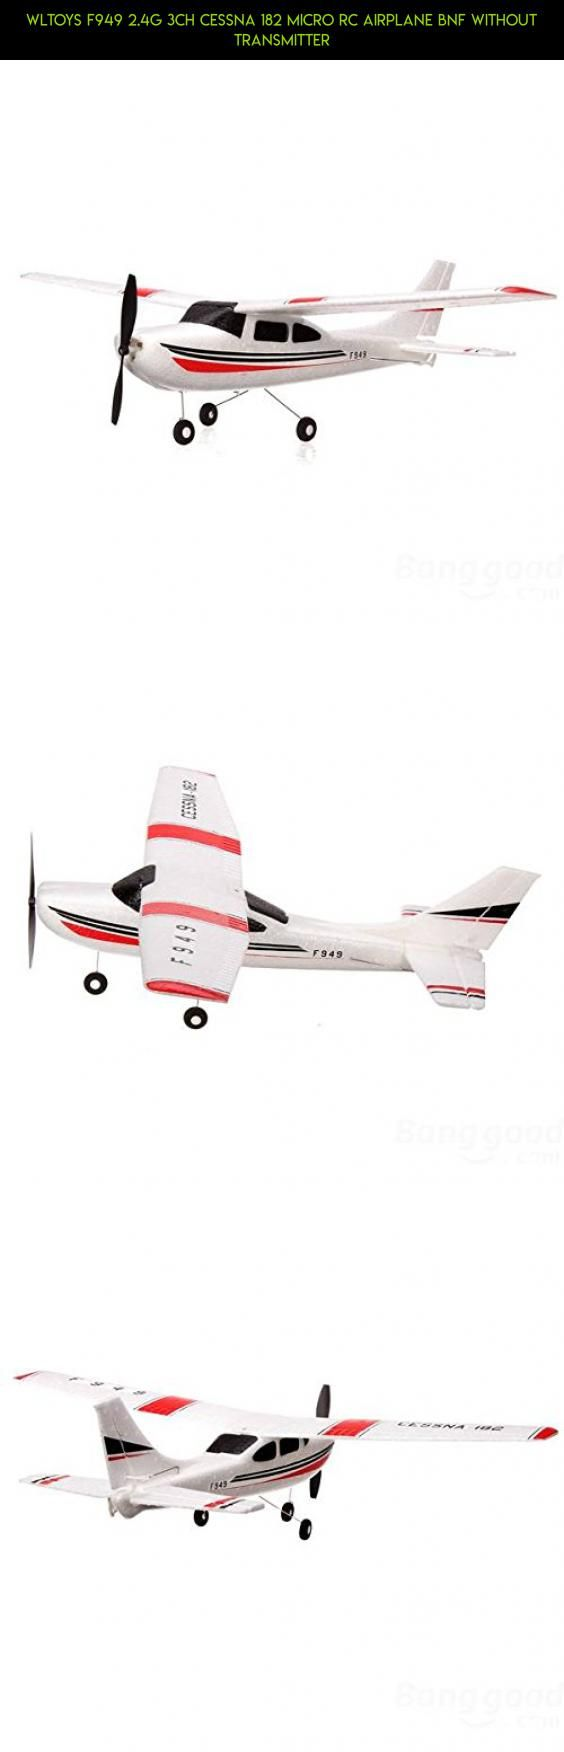 WLtoys F949 2.4G 3CH Cessna 182 Micro RC Airplane BNF Without Transmitter #parts #technology #fpv #tech #products #camera #racing #gadgets #plans #wltoys #cessna #shopping #drone #kit #182